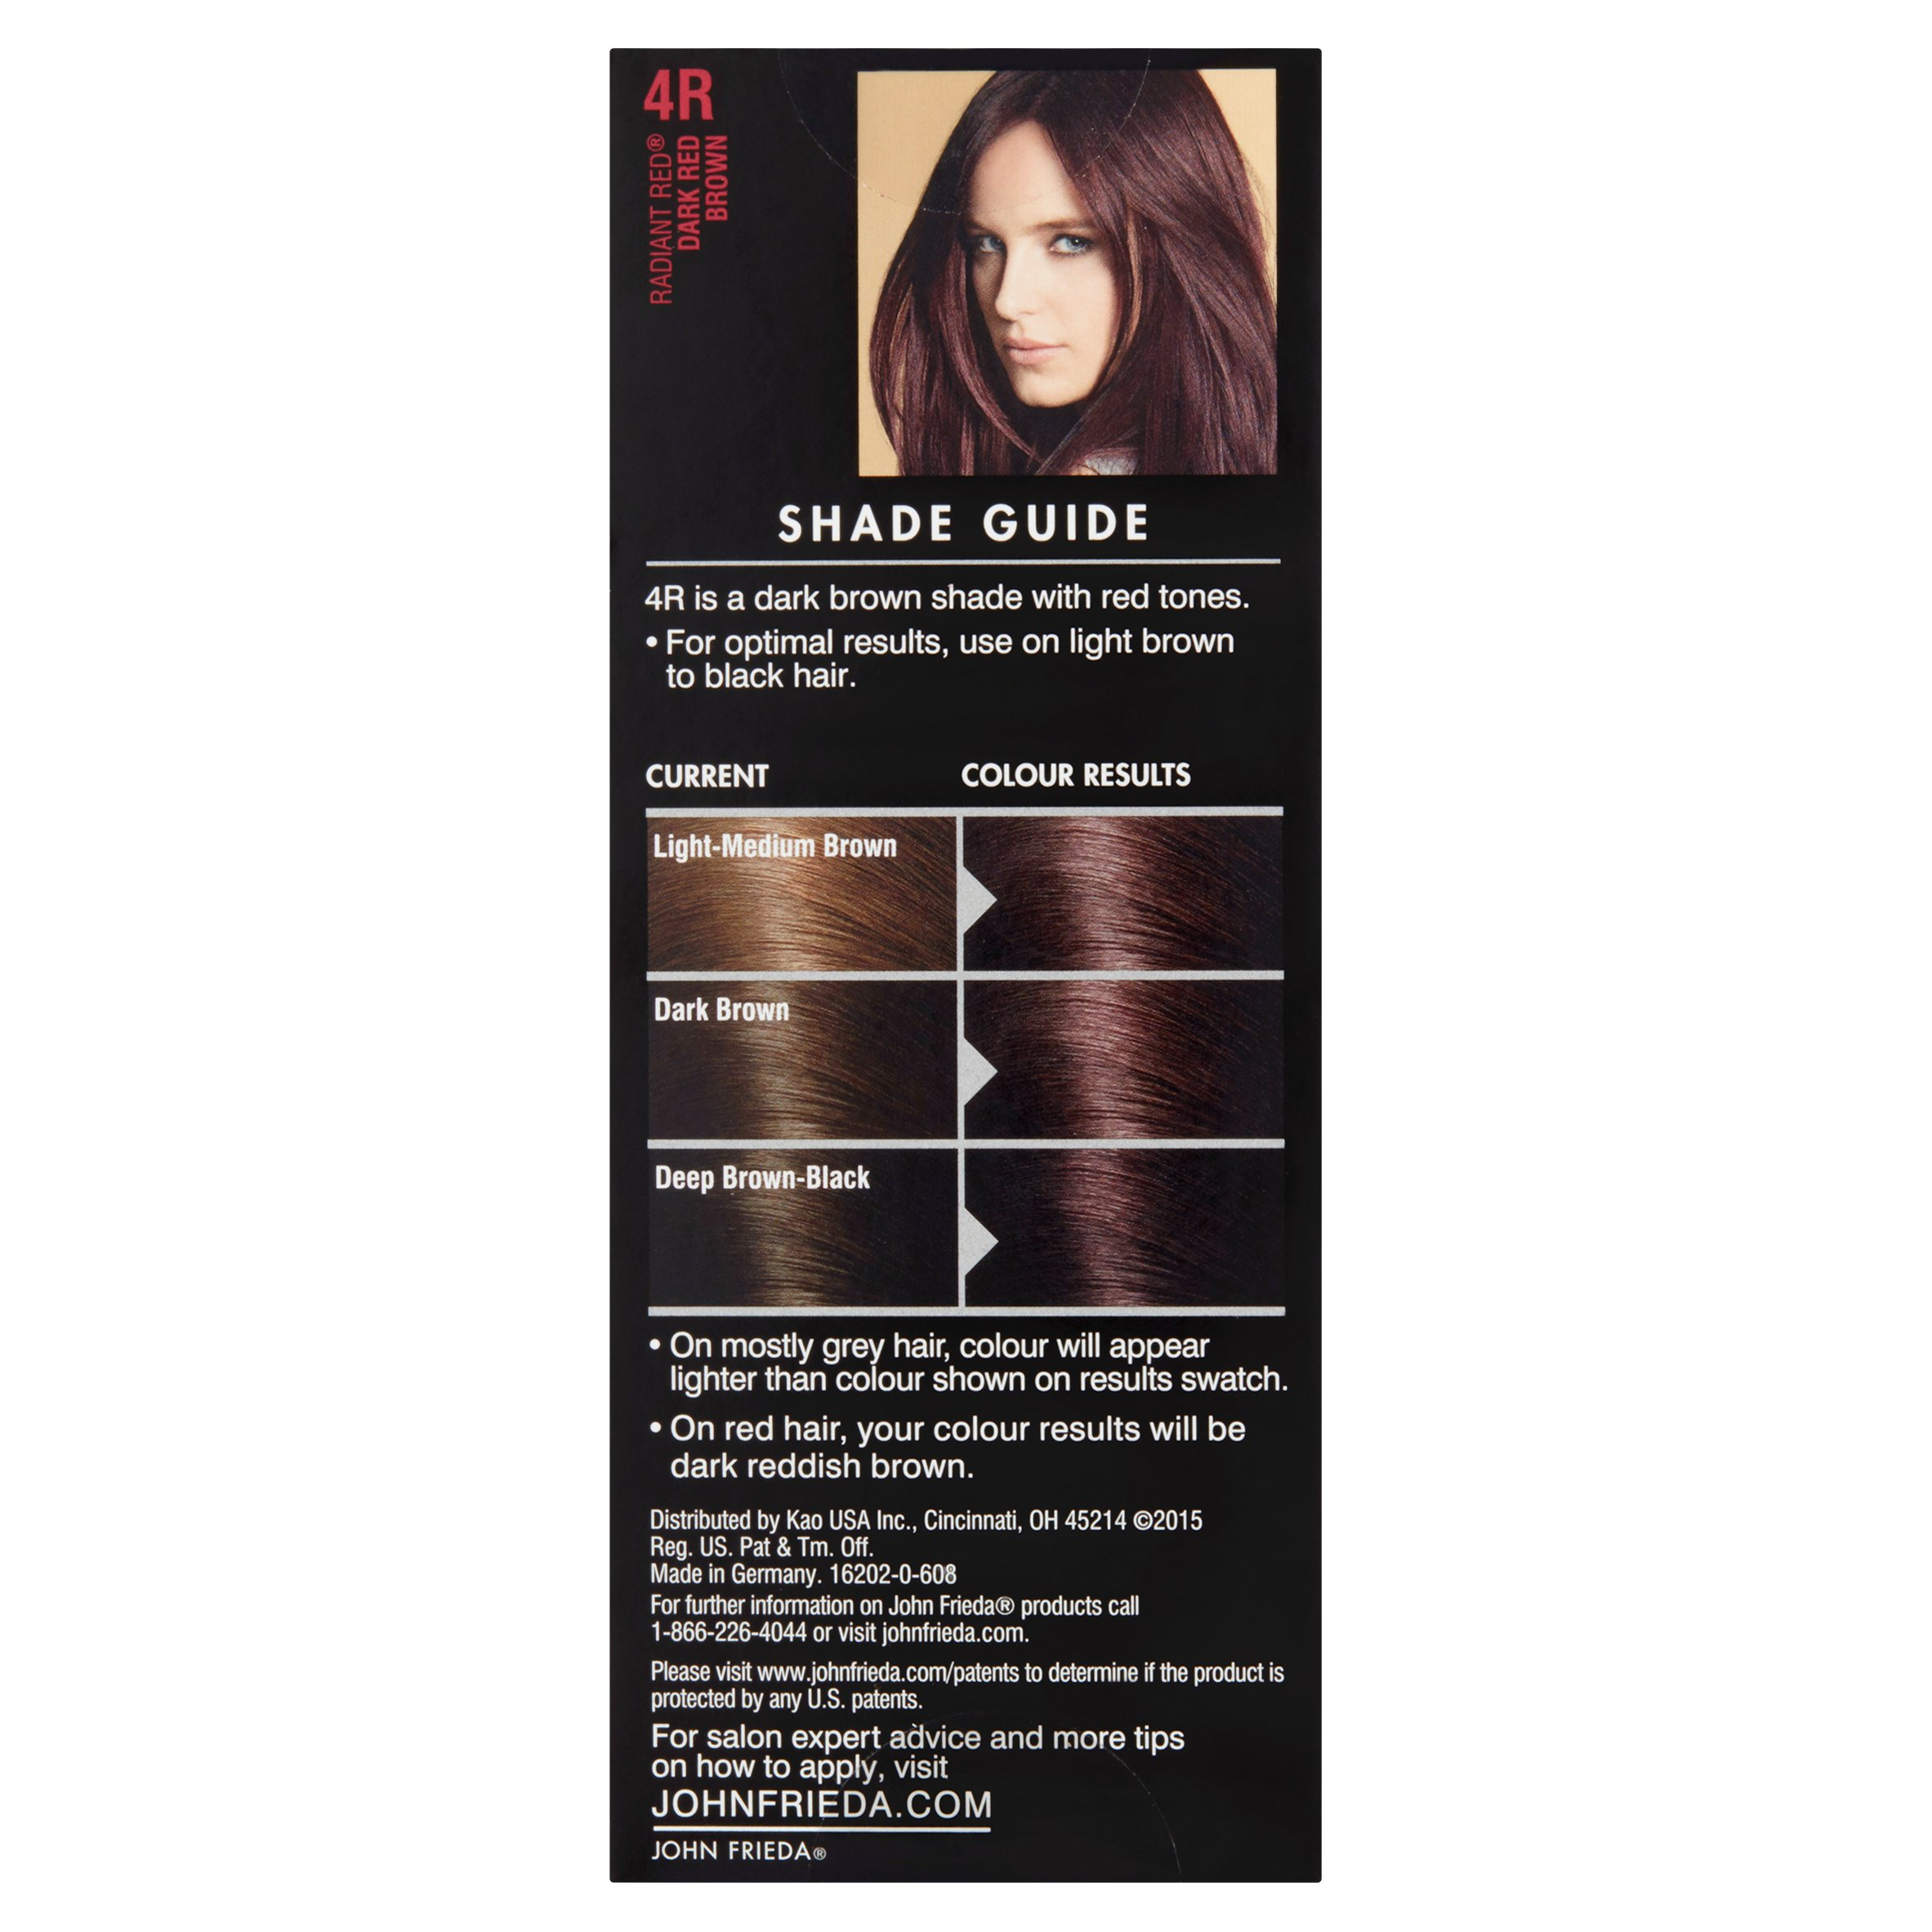 l coloring picture ea kit root minute loreal of brown light rescue oreal dye p lighting hair paris